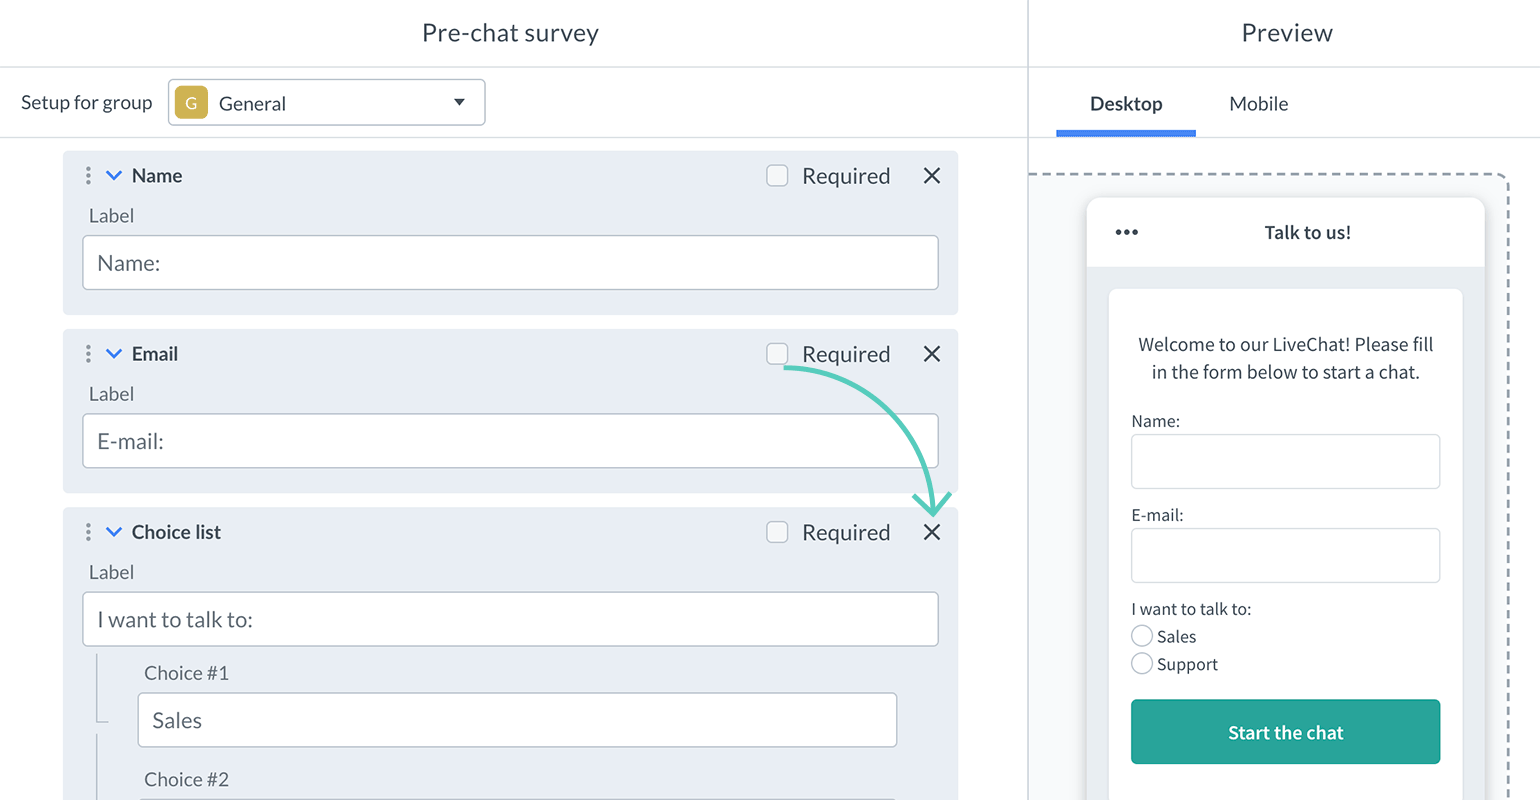 How to delete a field in pre-chat survey